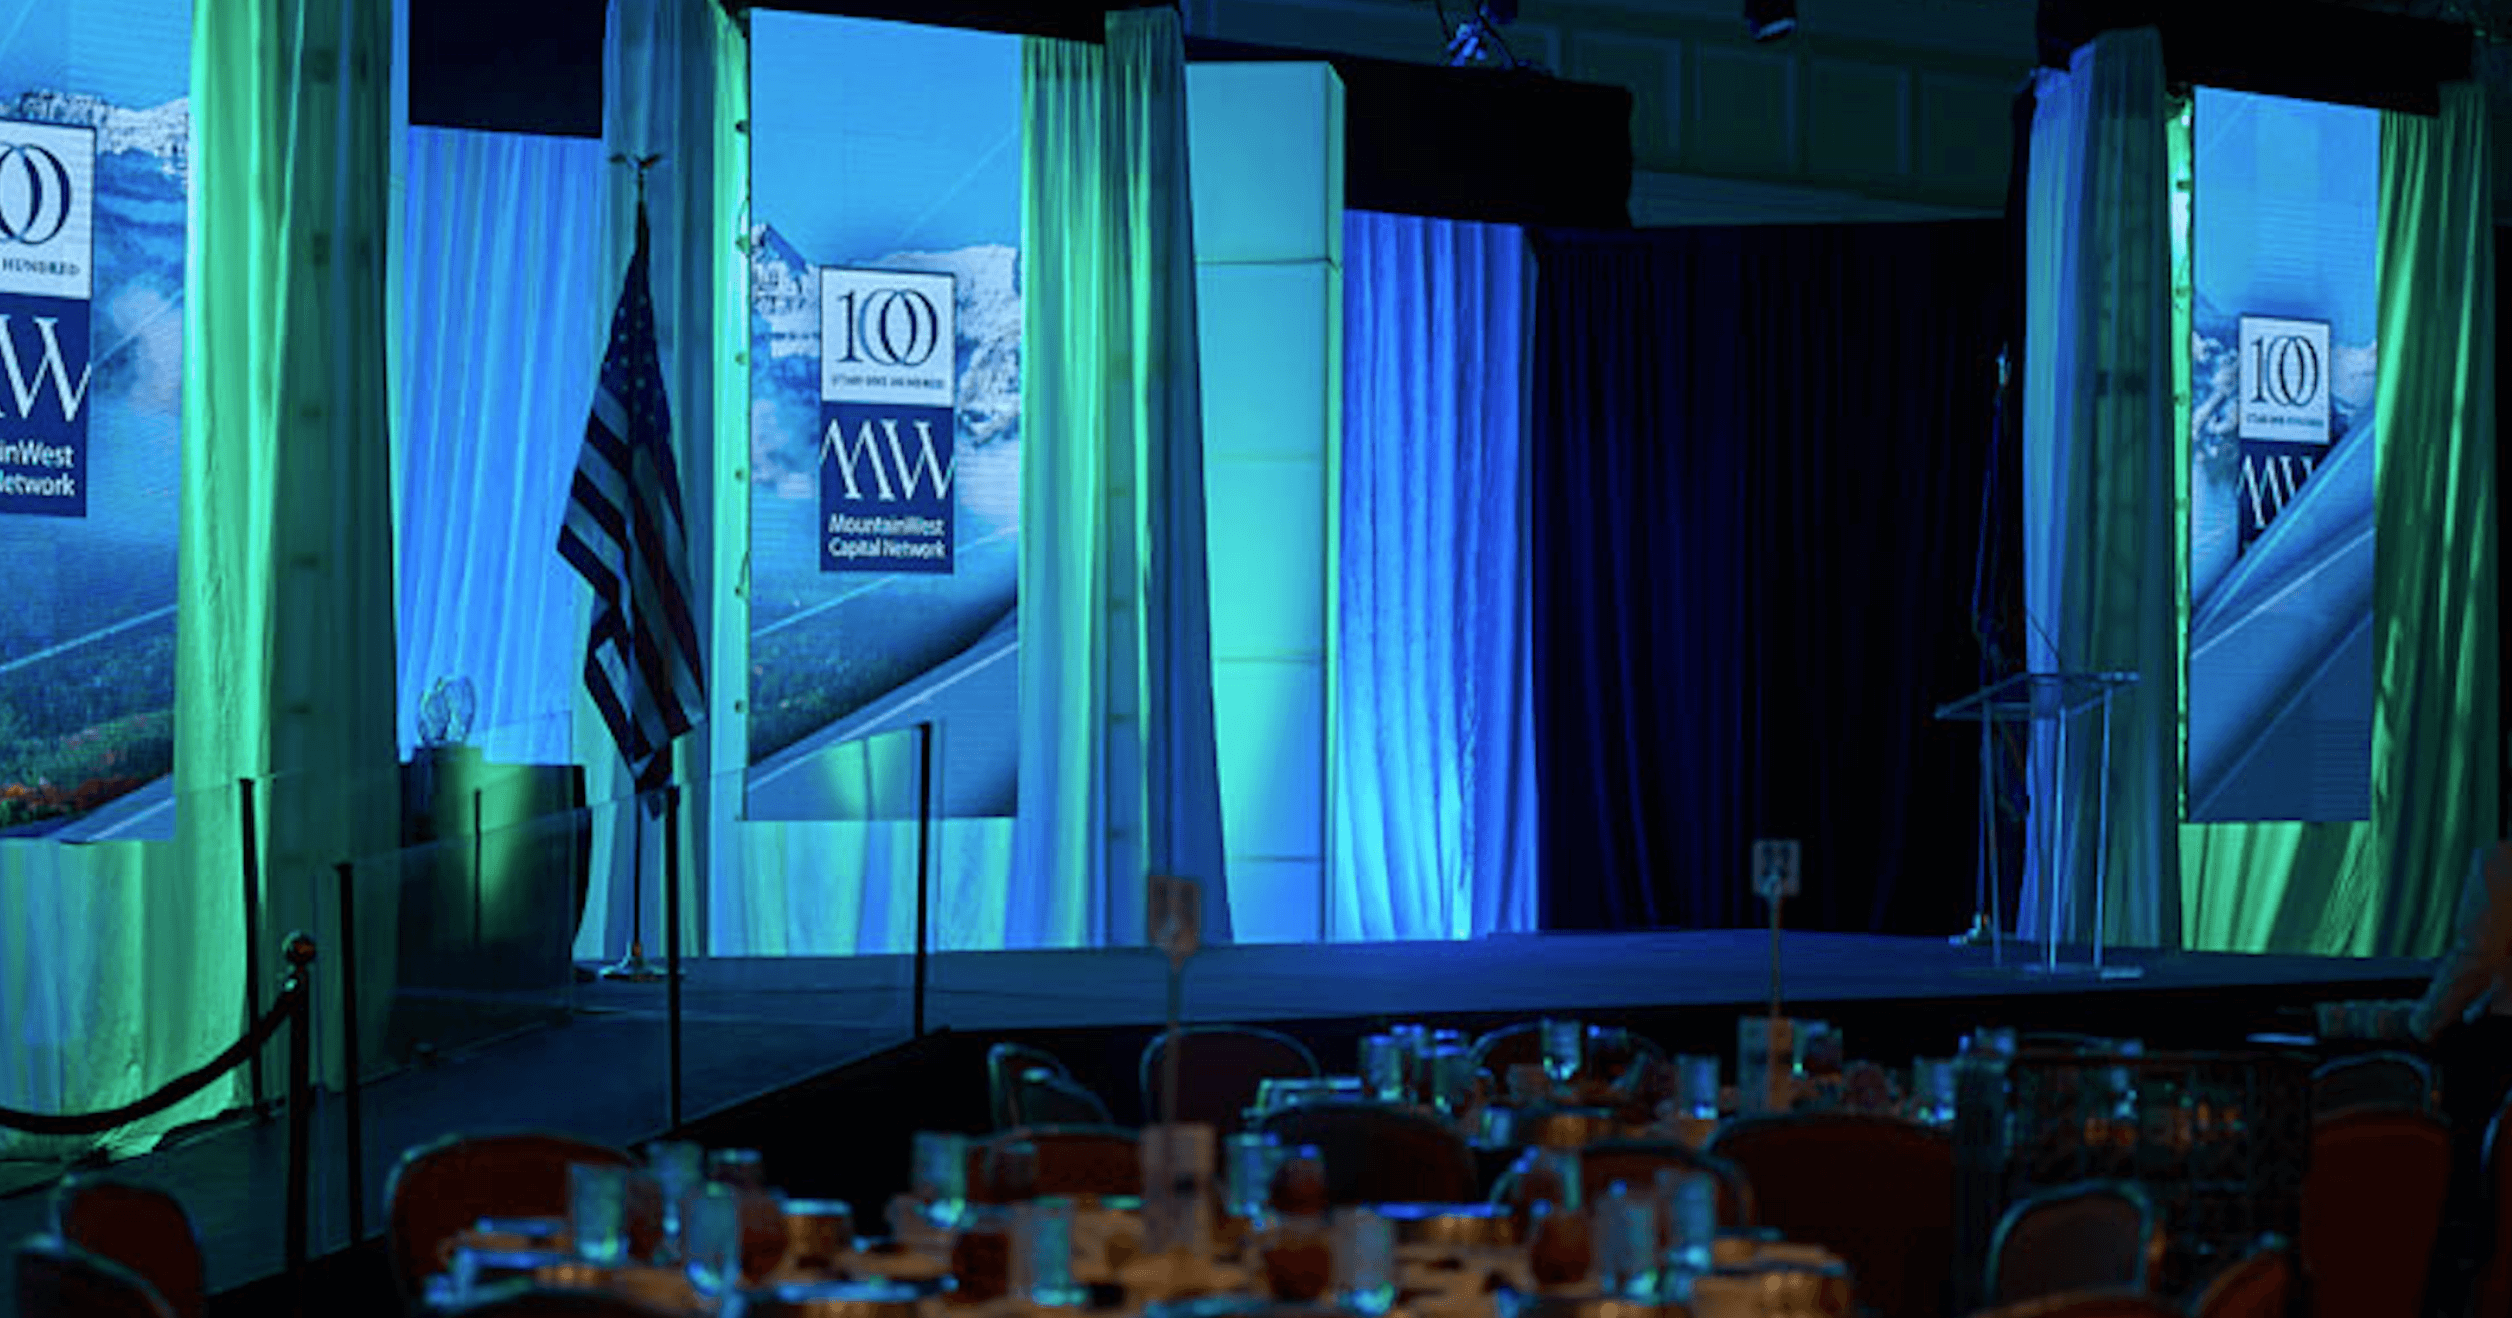 The MountainWest Capital Network recognized Pattern as the No. 15 Top Revenue Growth company in Utah at their annual Utah 100 Award event on Oct. 30, 2019